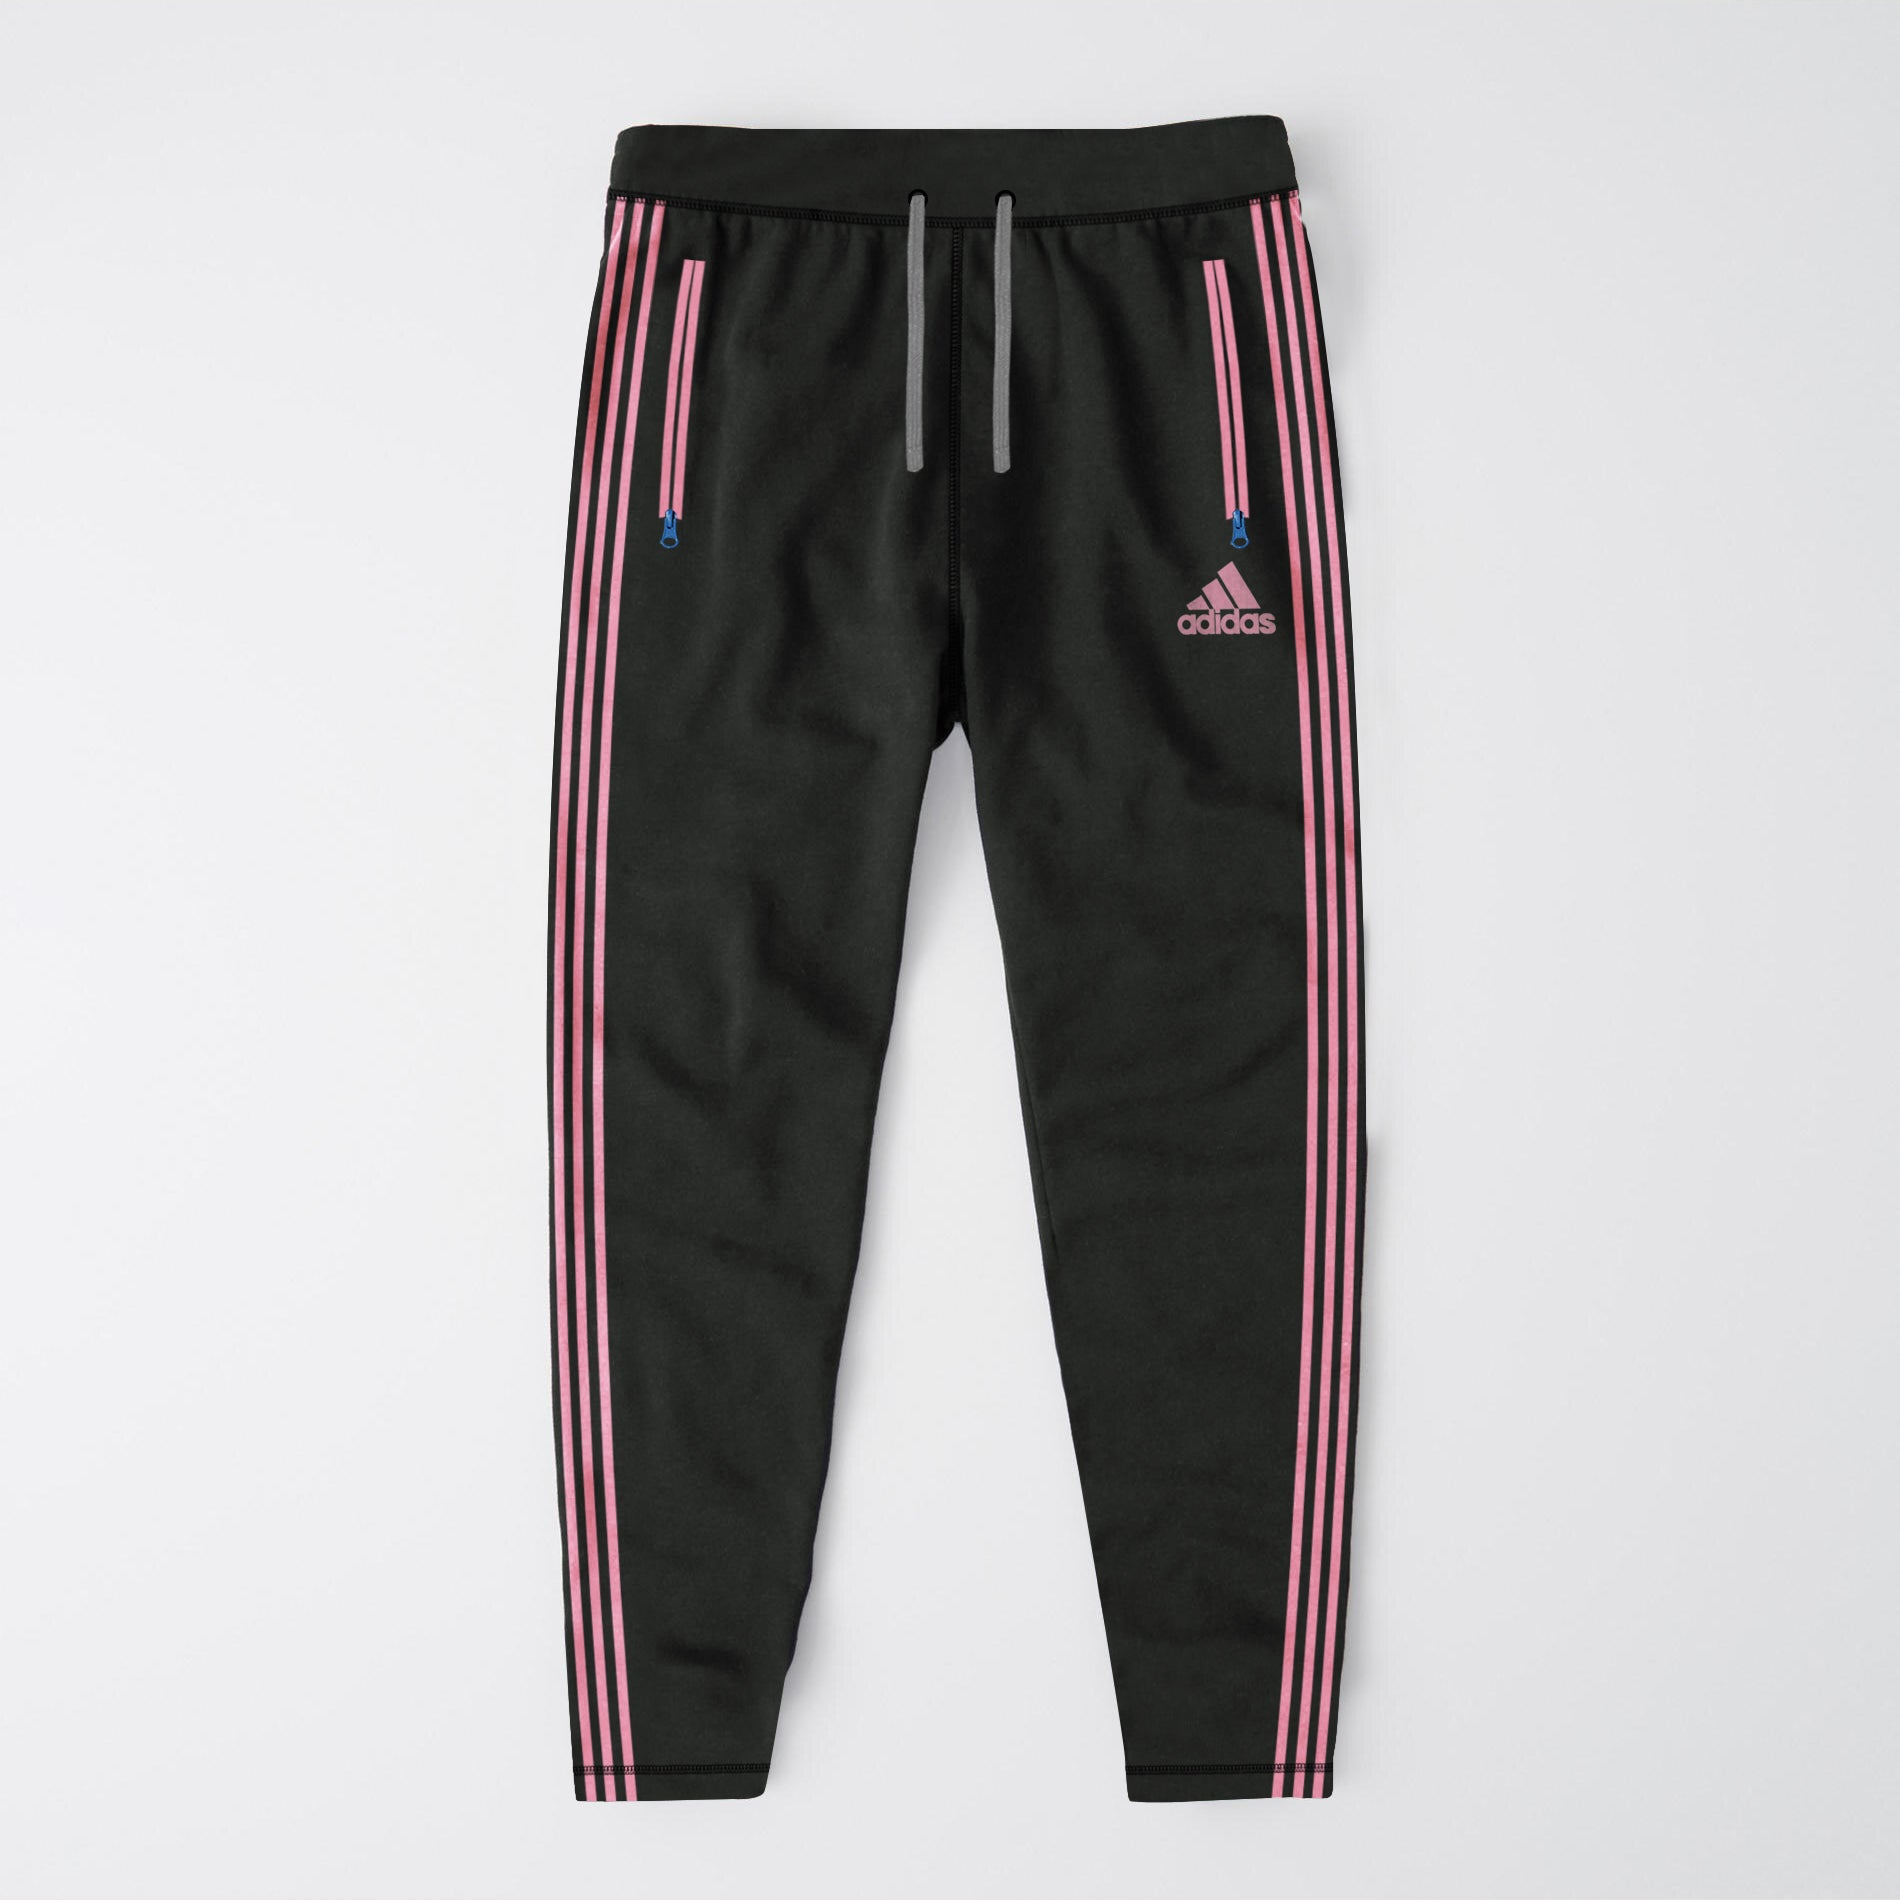 Adidas Single Jersey Regular Fit Trouser For Men-Rosy Black & Pink Stripe-BE8662